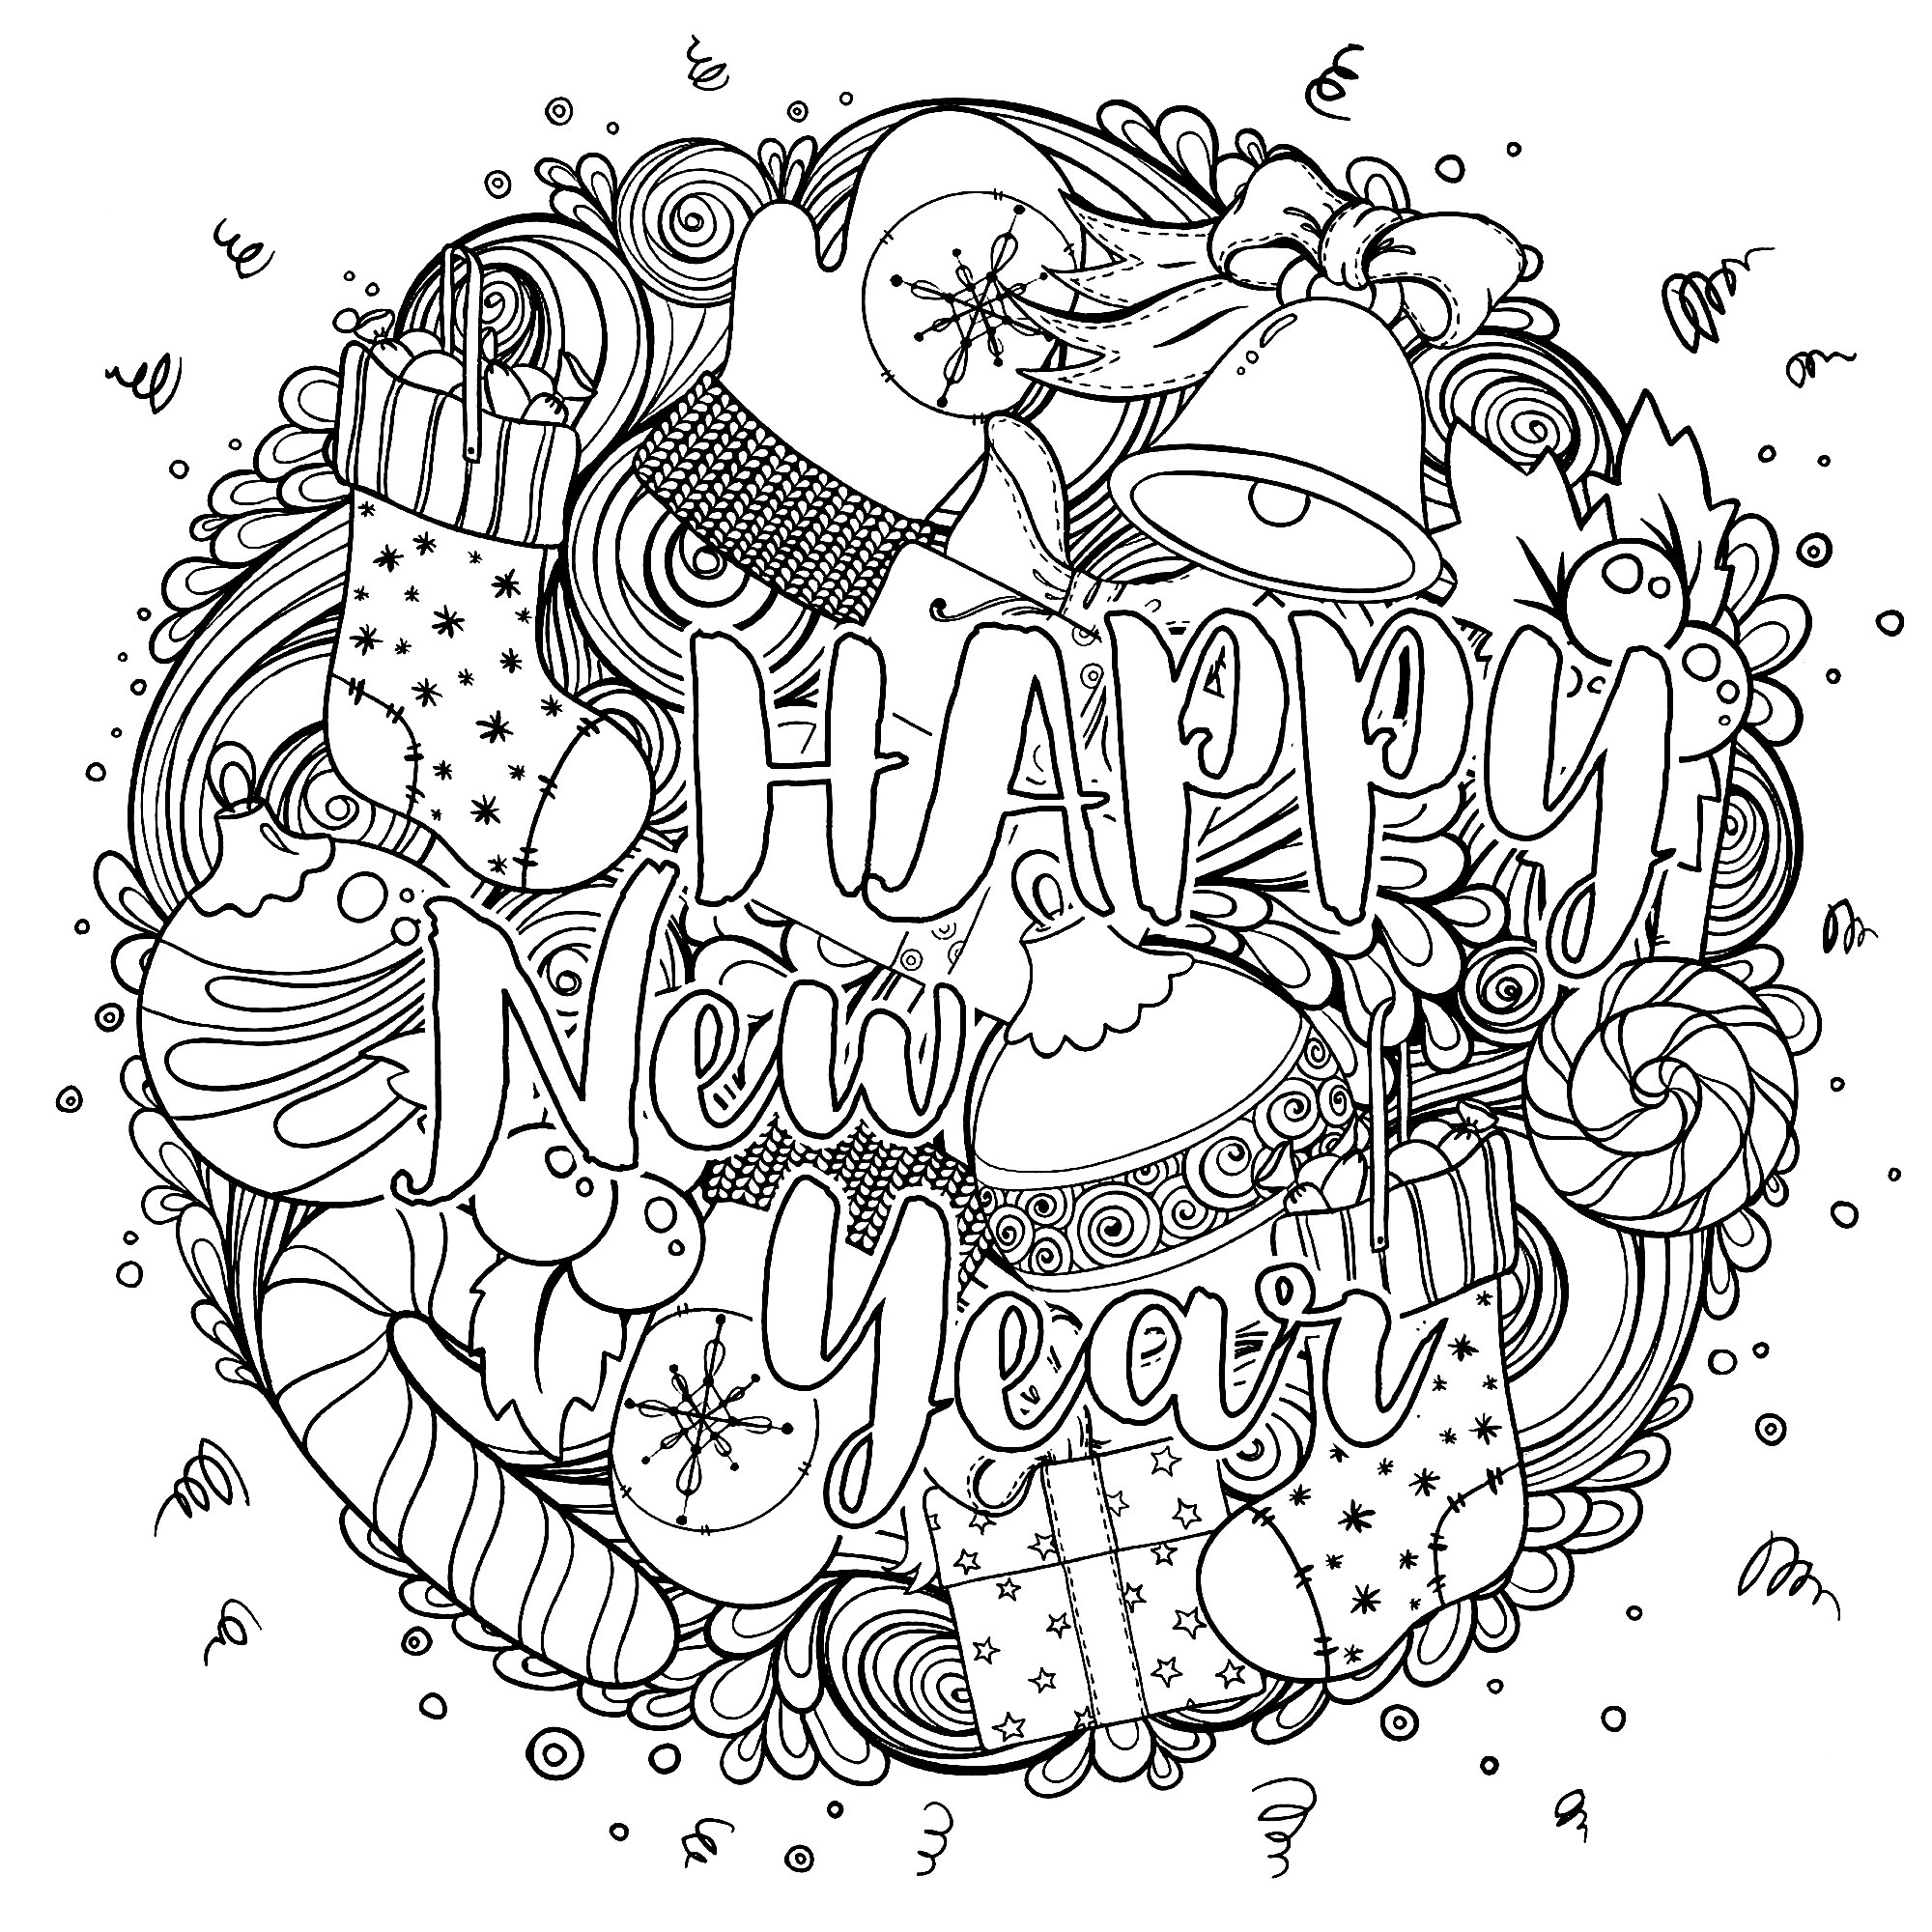 Coloring page happy new year circular design circular drawing with many objects representative of the winter period and the transition to the new